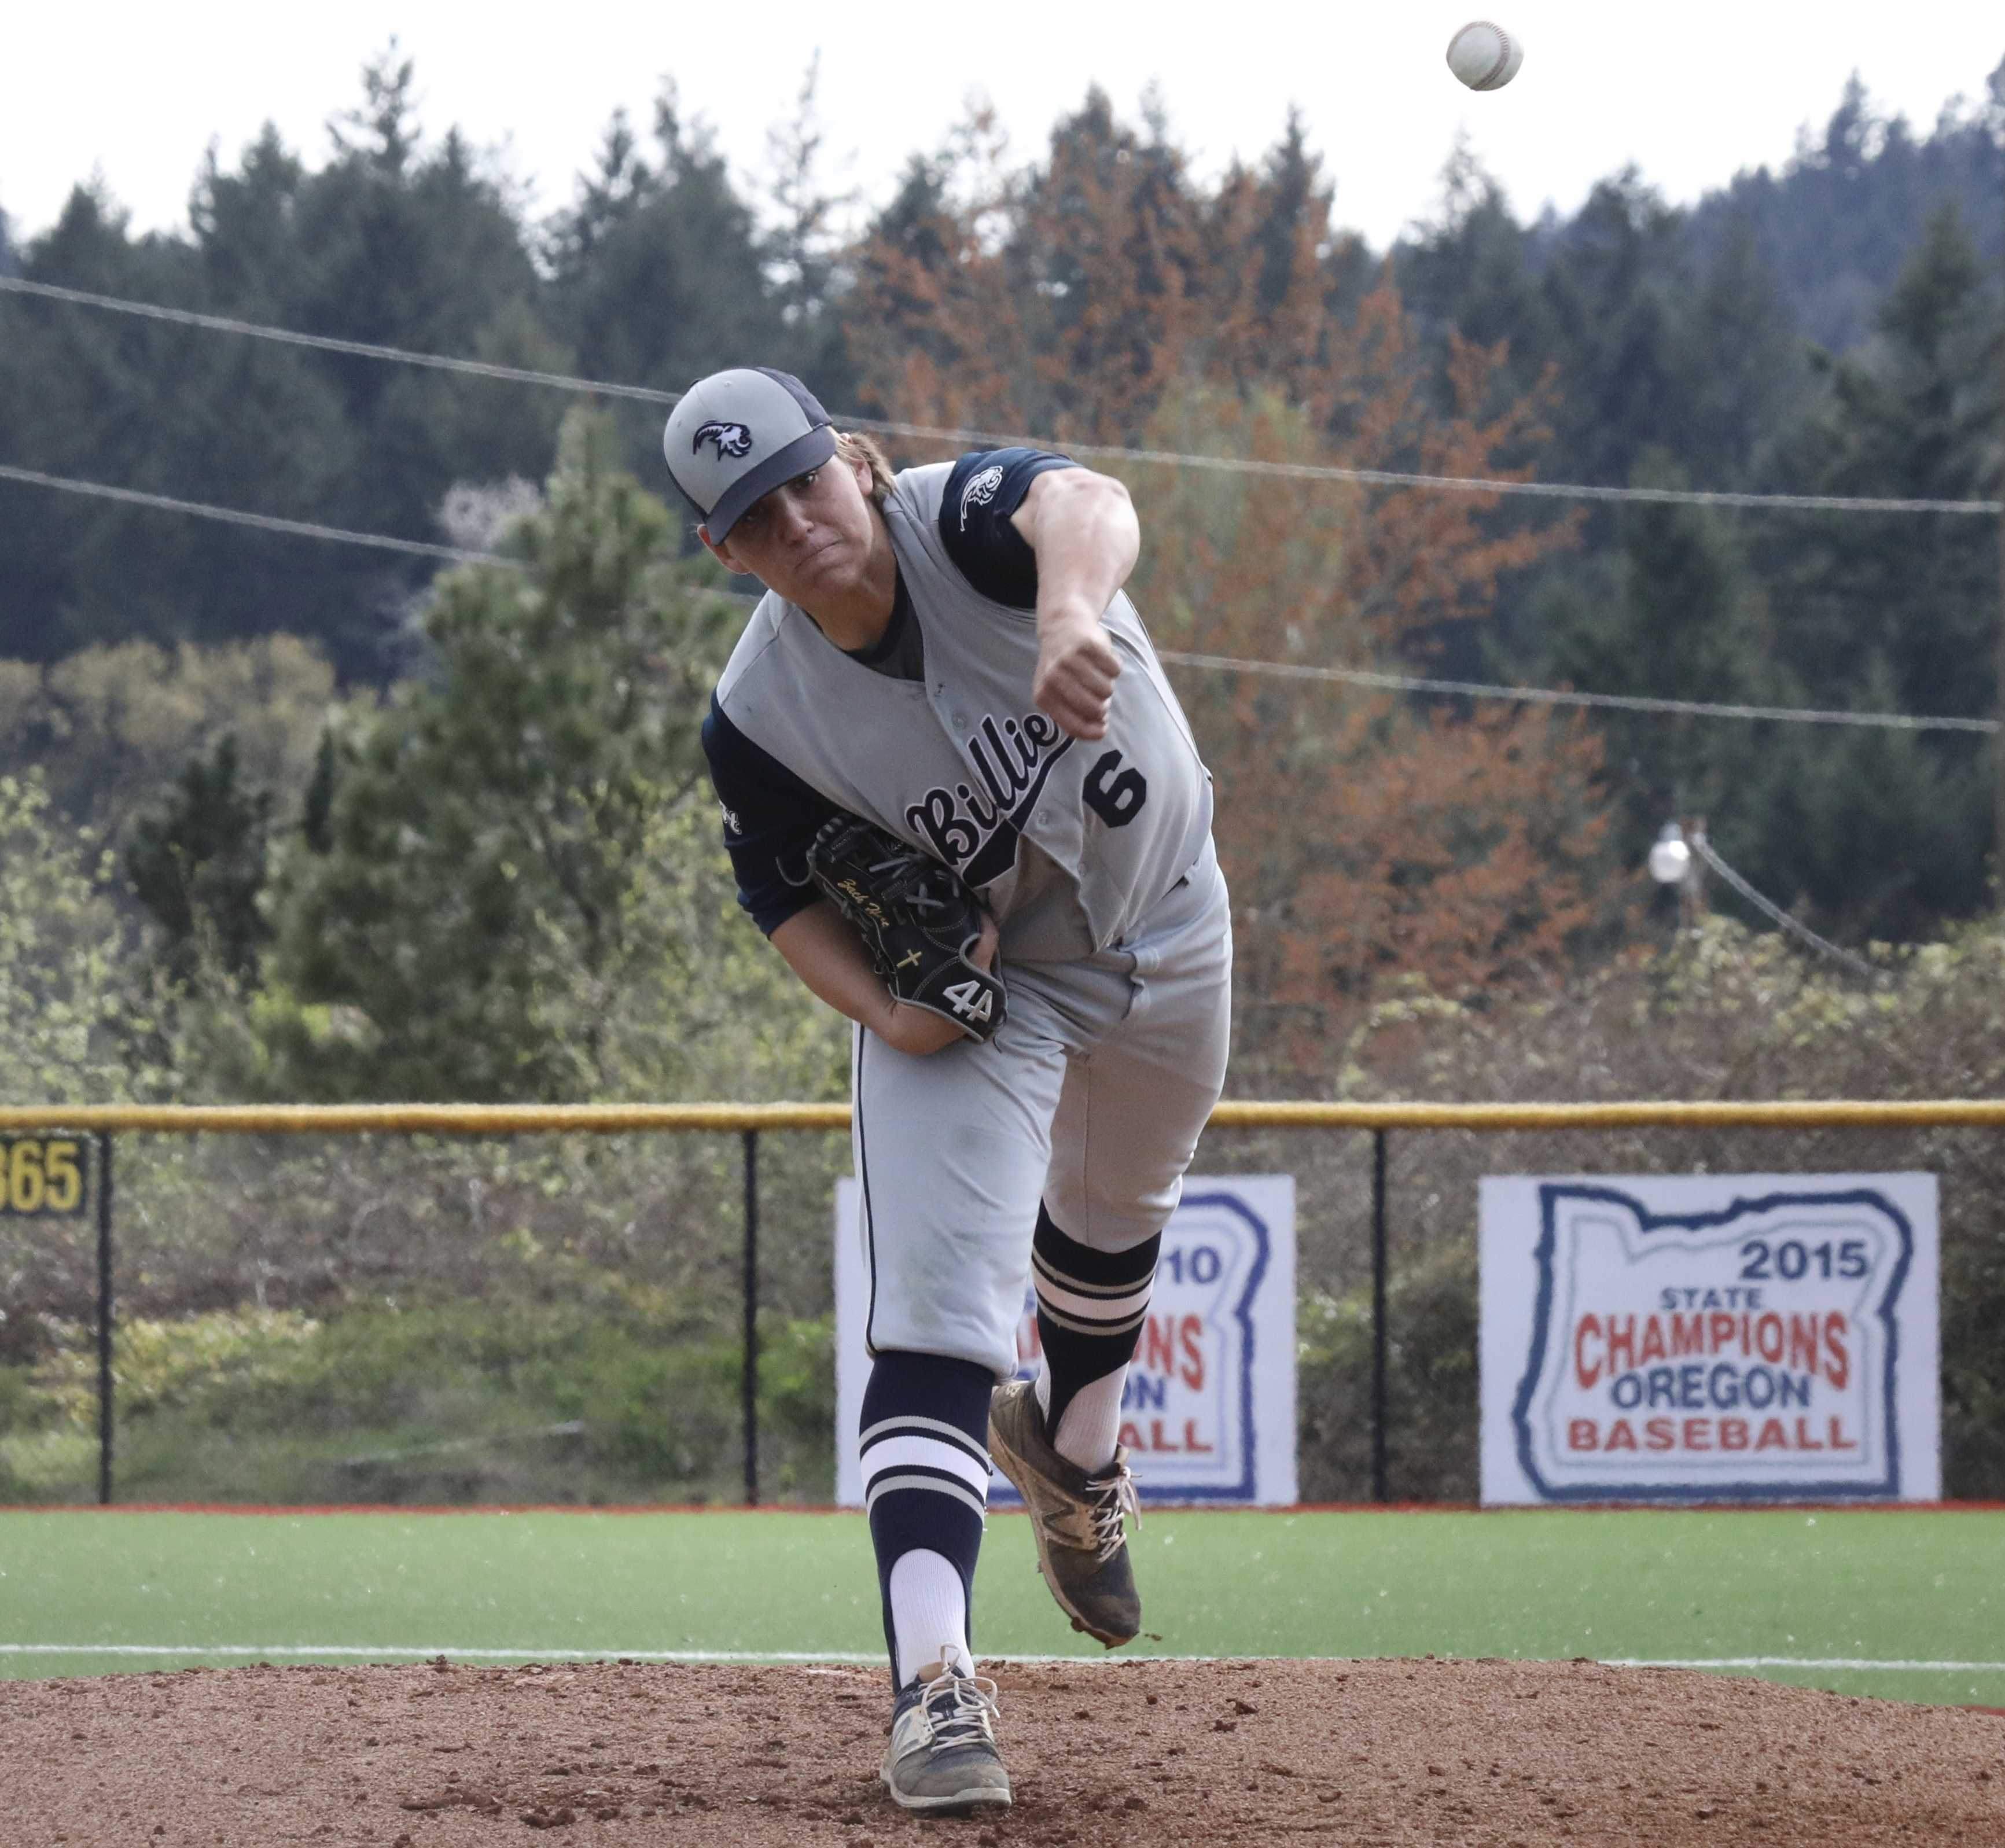 Pleasant Hill left-hander Zach Hart allowed only three hits, struck out 10 and got two hits to lead Billies (Norm Maves Jr.)